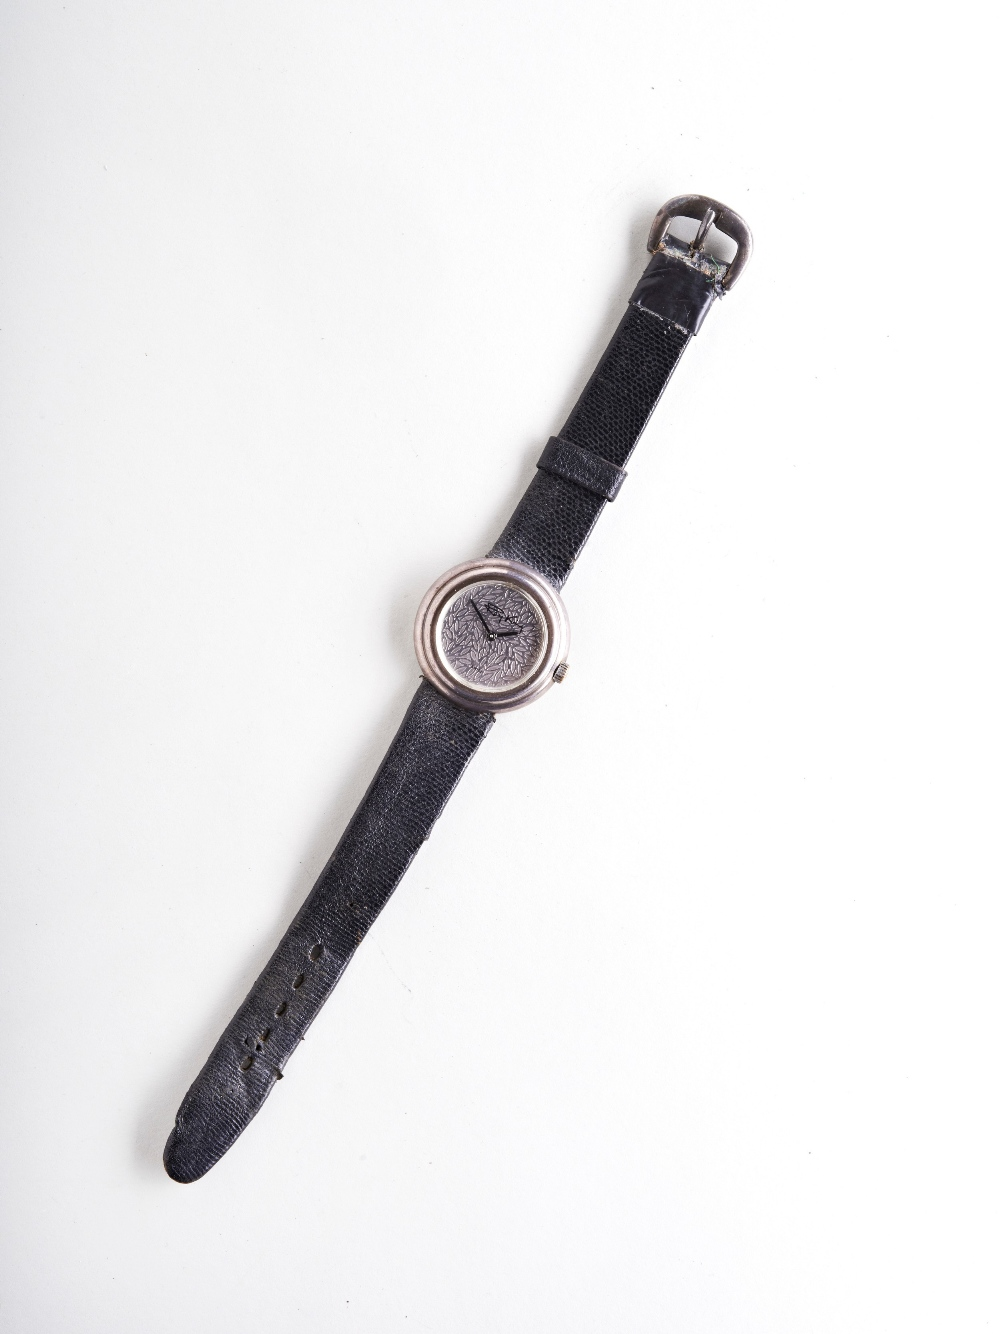 ROY KING SILVER MANUAL WIND UNISEX WRISTWATCH, the leaf effect dial with black signature the case - Image 2 of 3